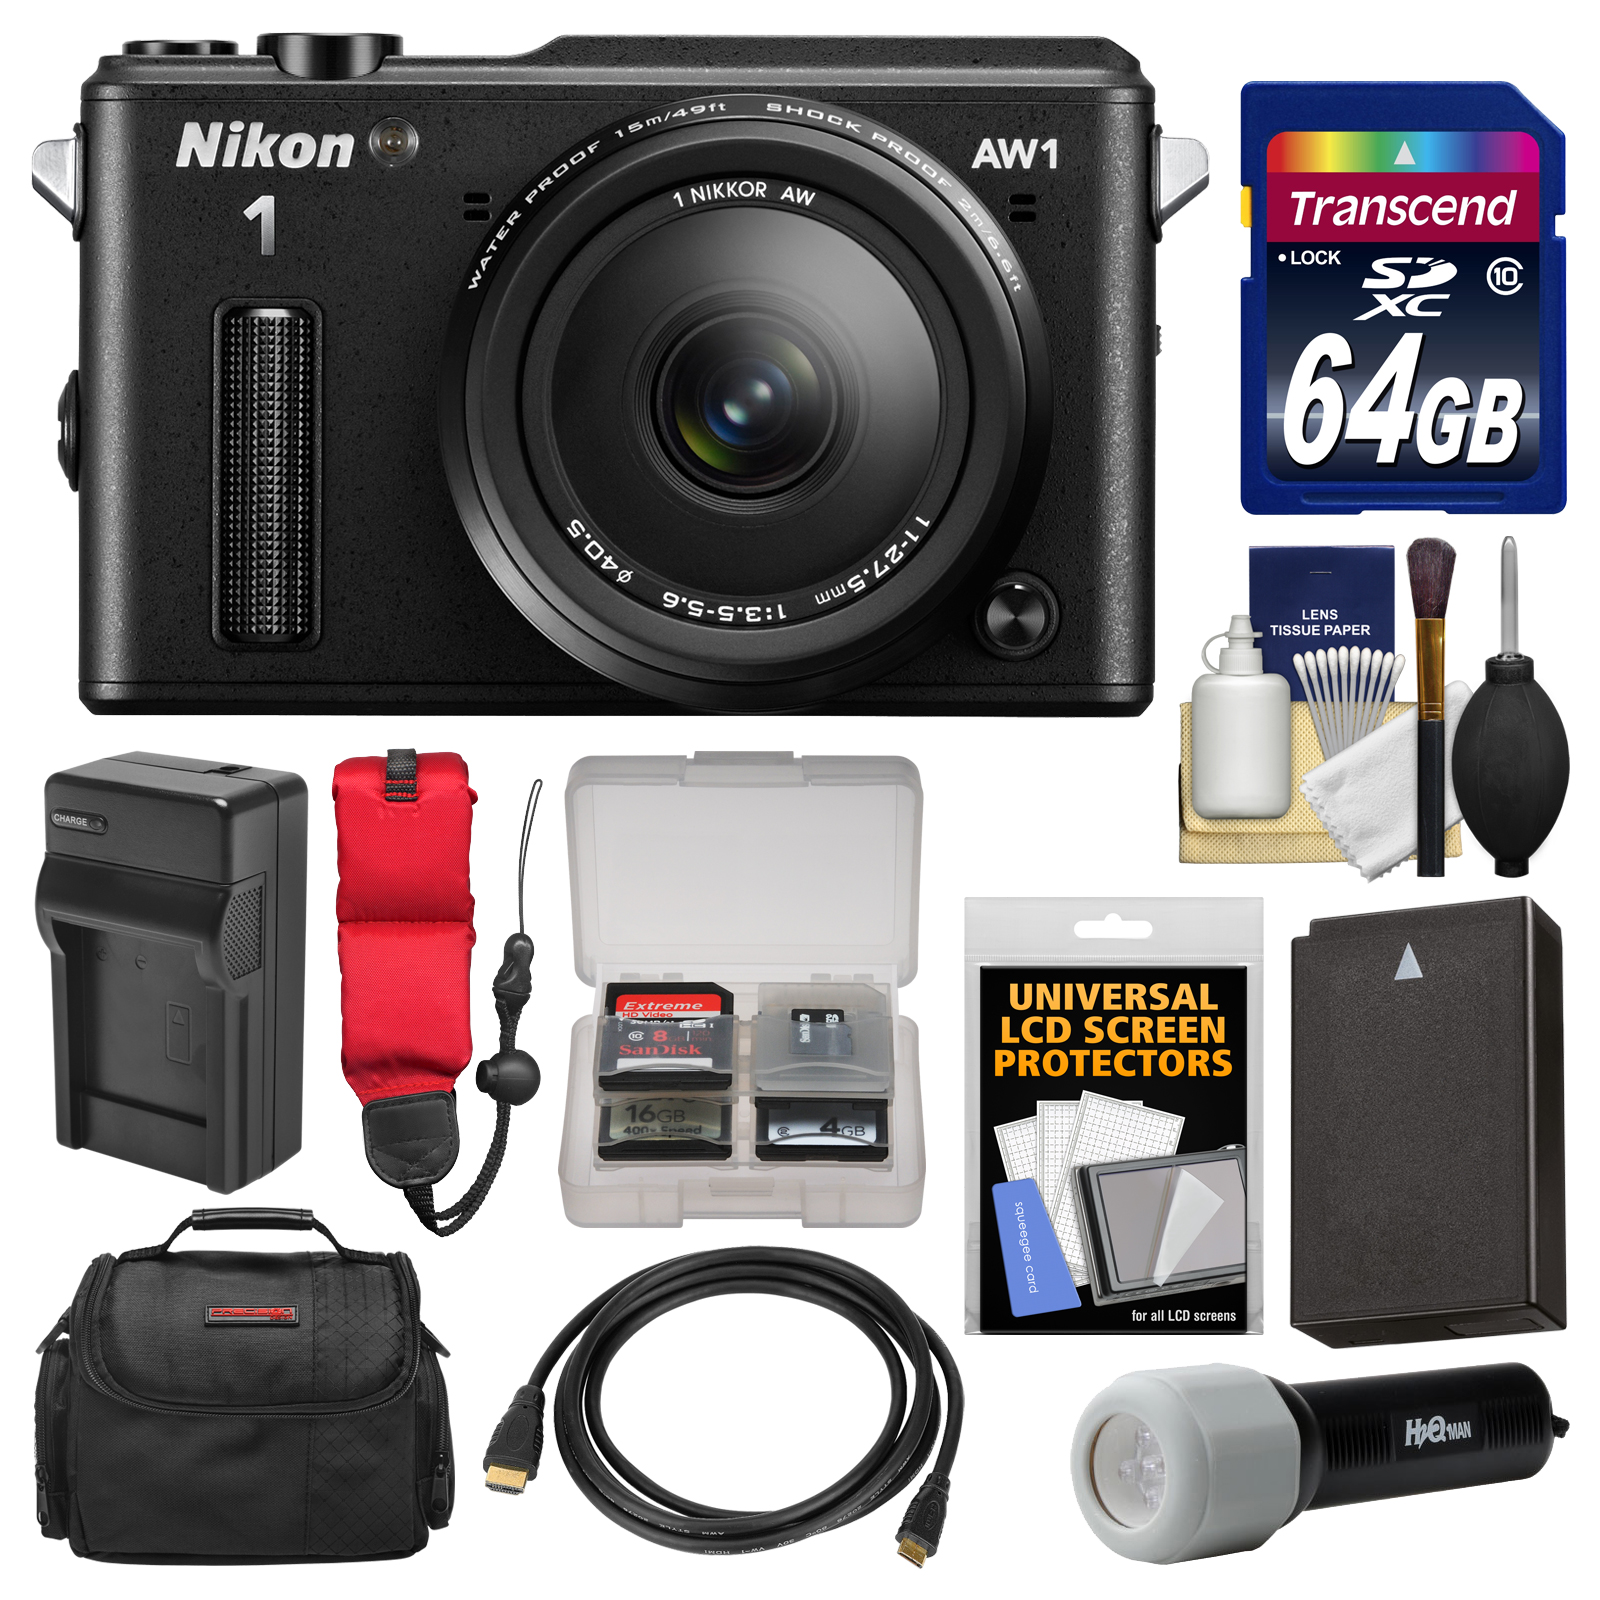 Nikon 1 AW1 Shock & Waterproof Digital Camera Body with A...